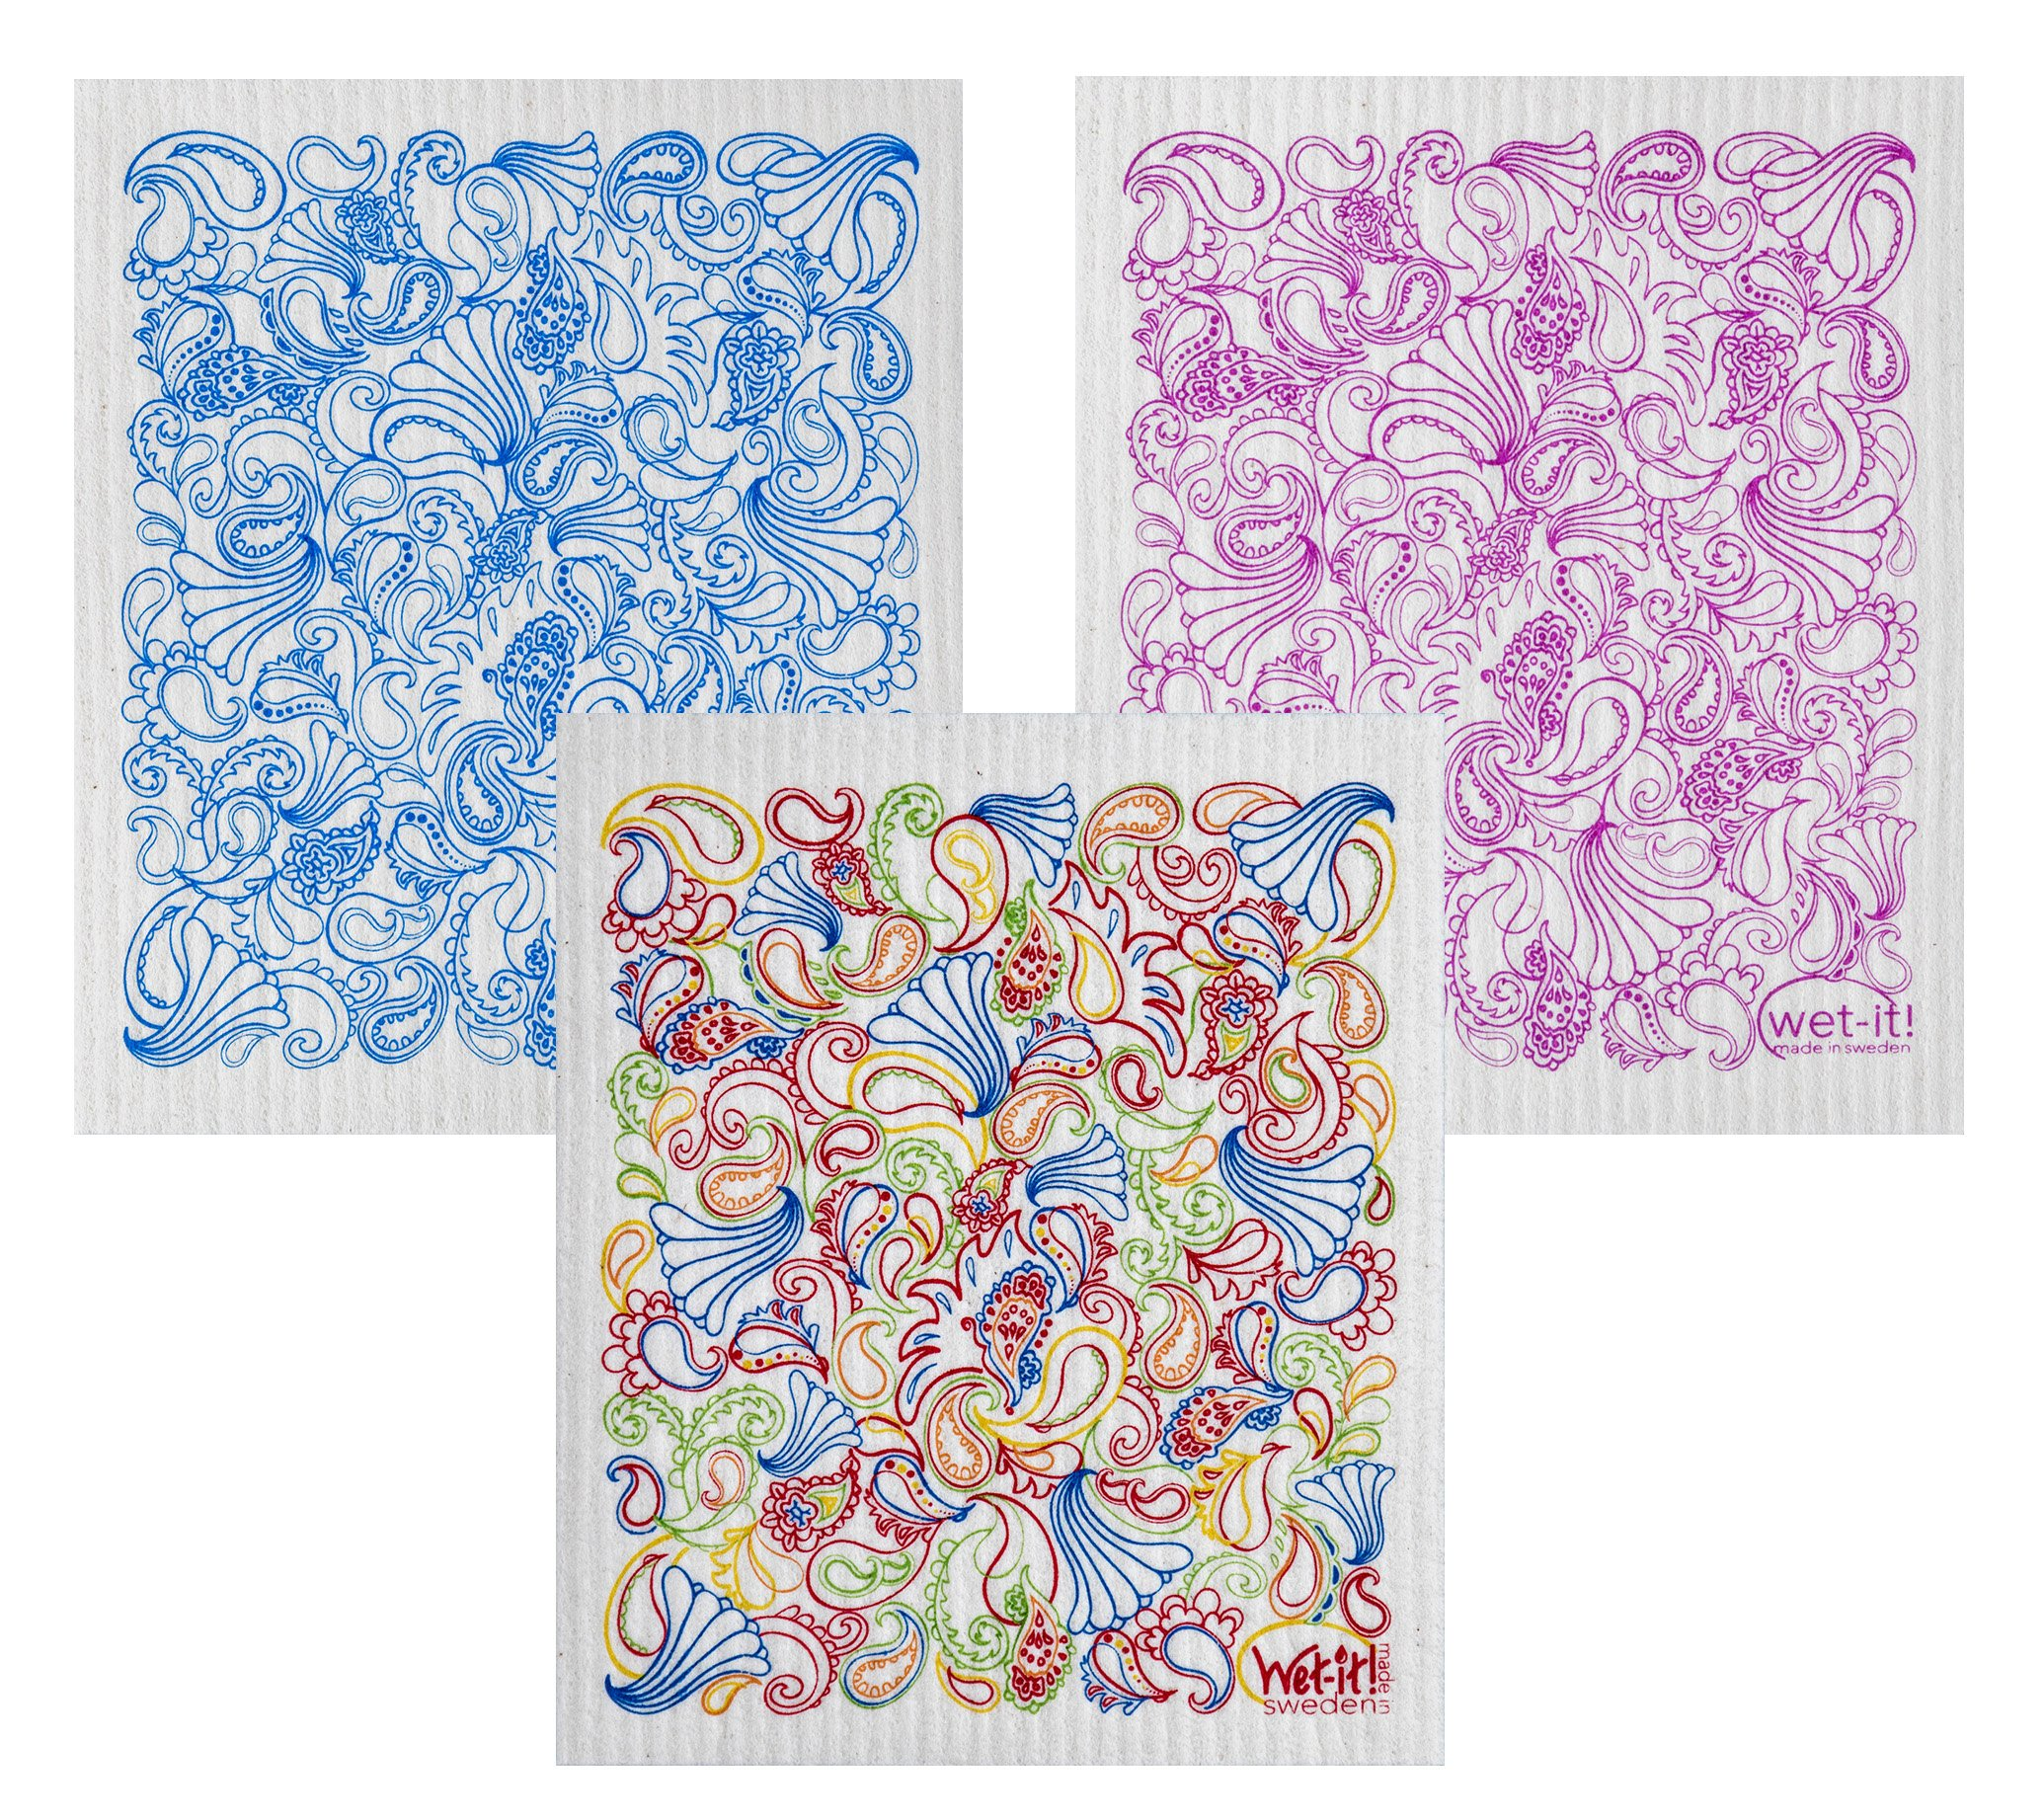 Wet-It Swedish Dishcloth Set of 3 (Paisley in Blue, Pink and Multicolors) by Wet-It